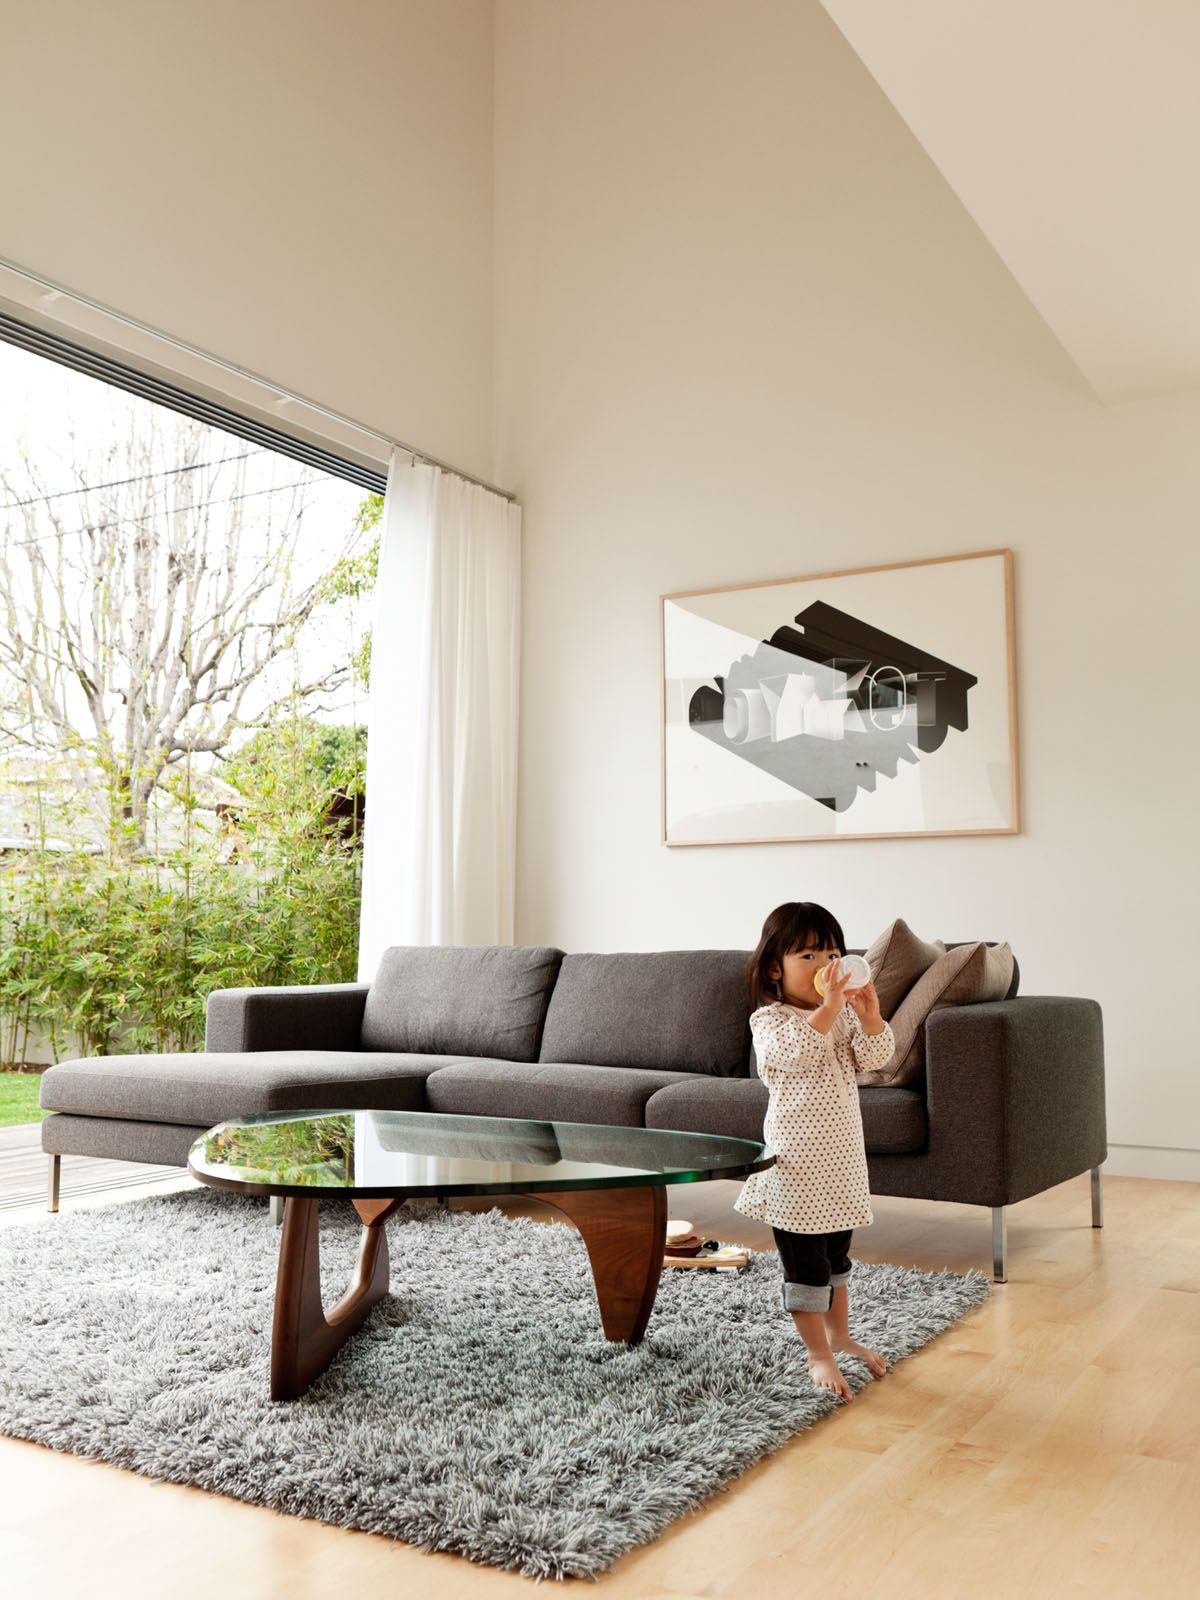 Dwell Though tricked out with high tech touches this house s